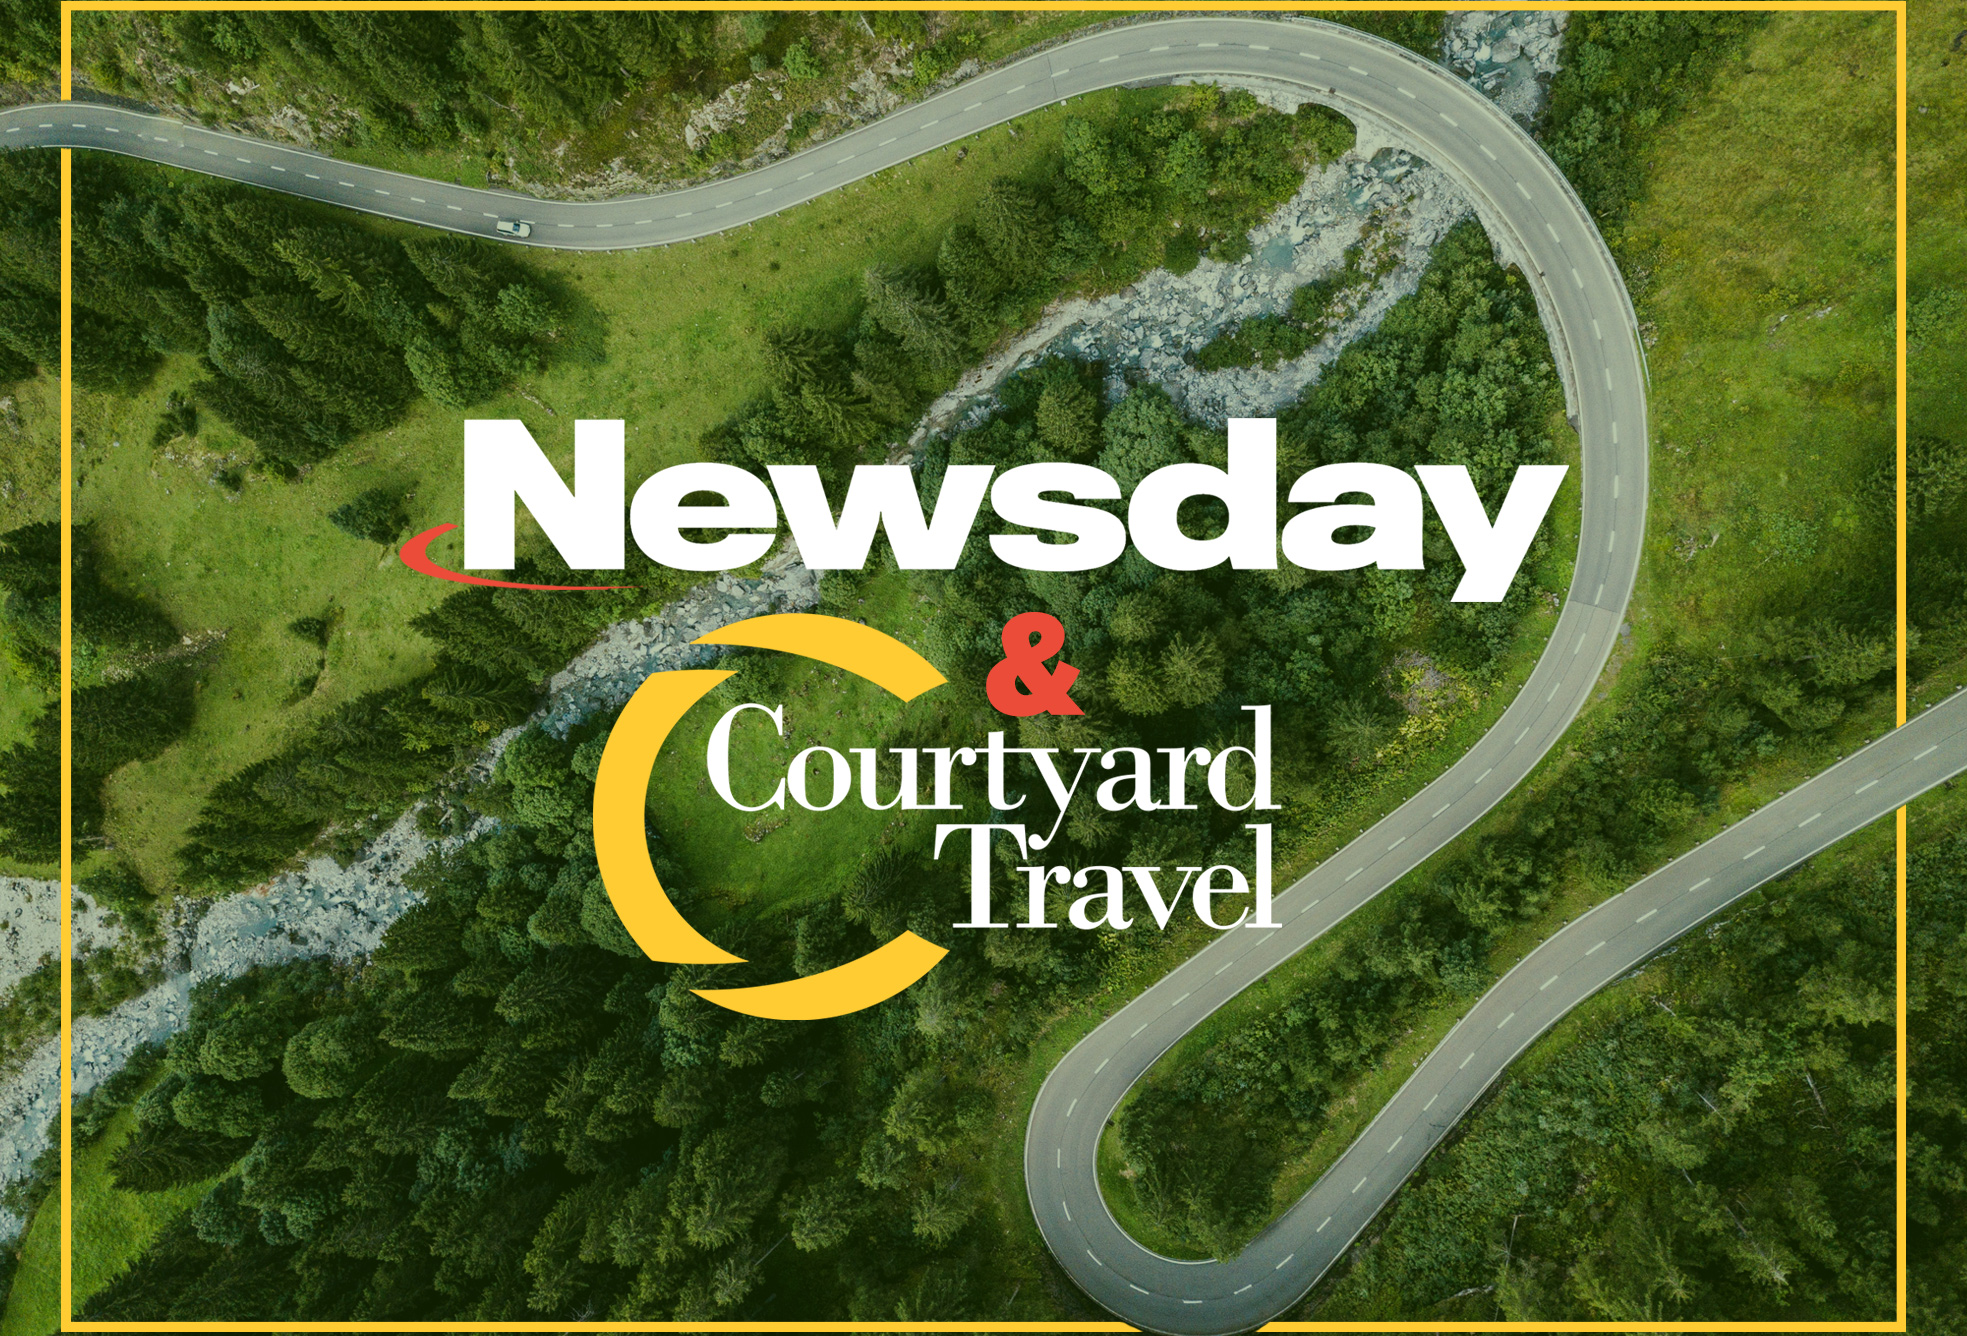 """Newsday & Courtyard Travel, """"The Golden Years"""""""